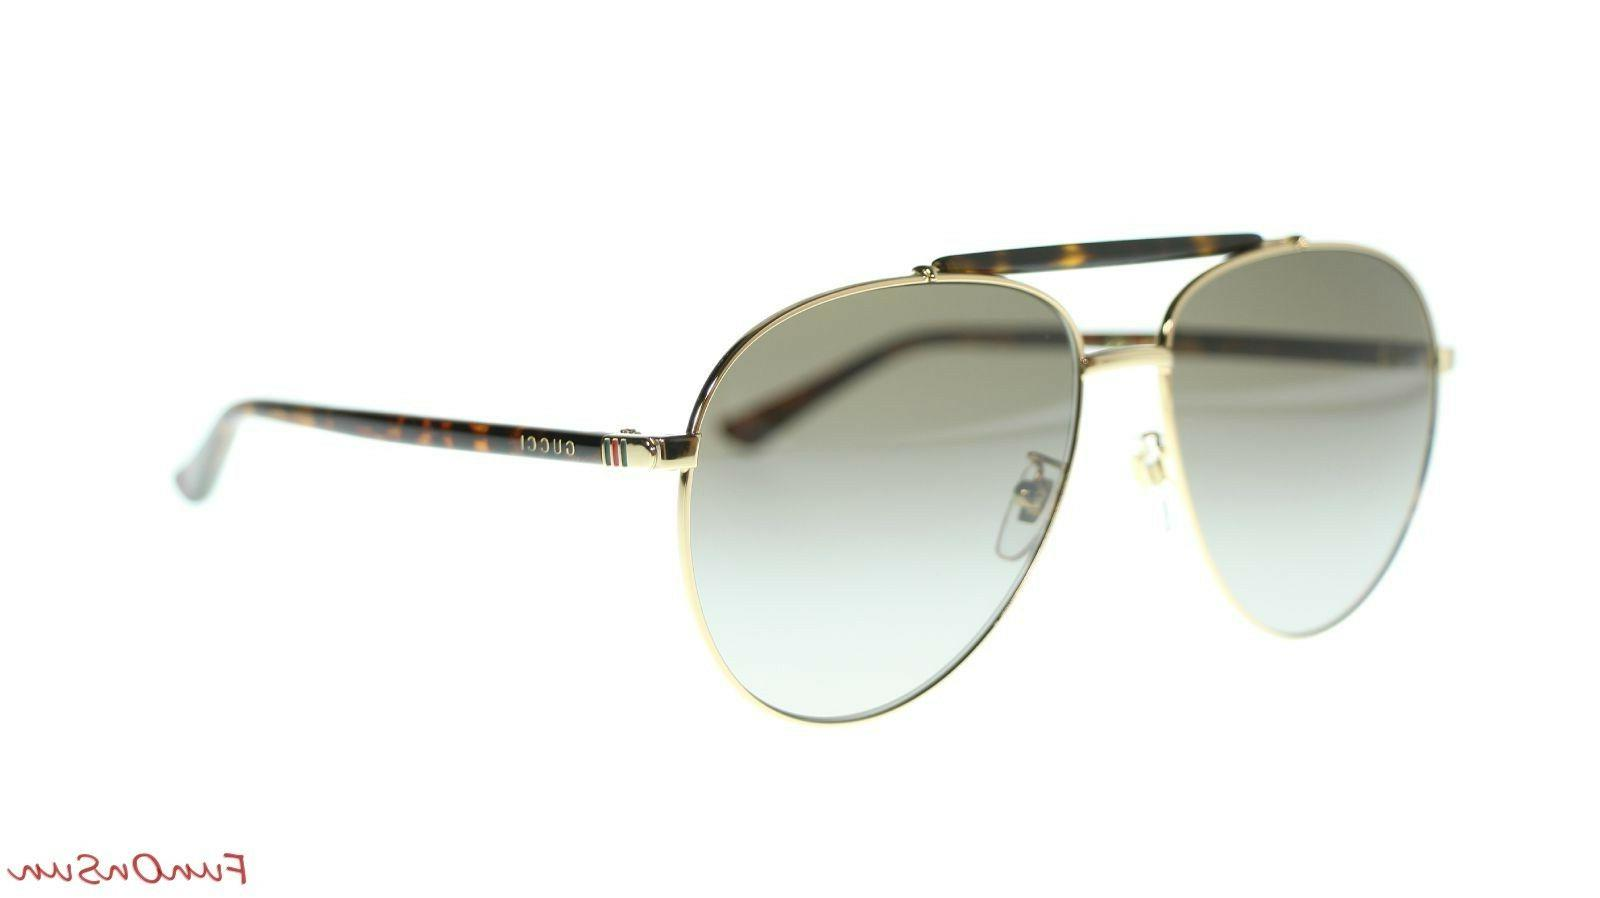 Gucci 002 Gold/Brown Lens Aviator